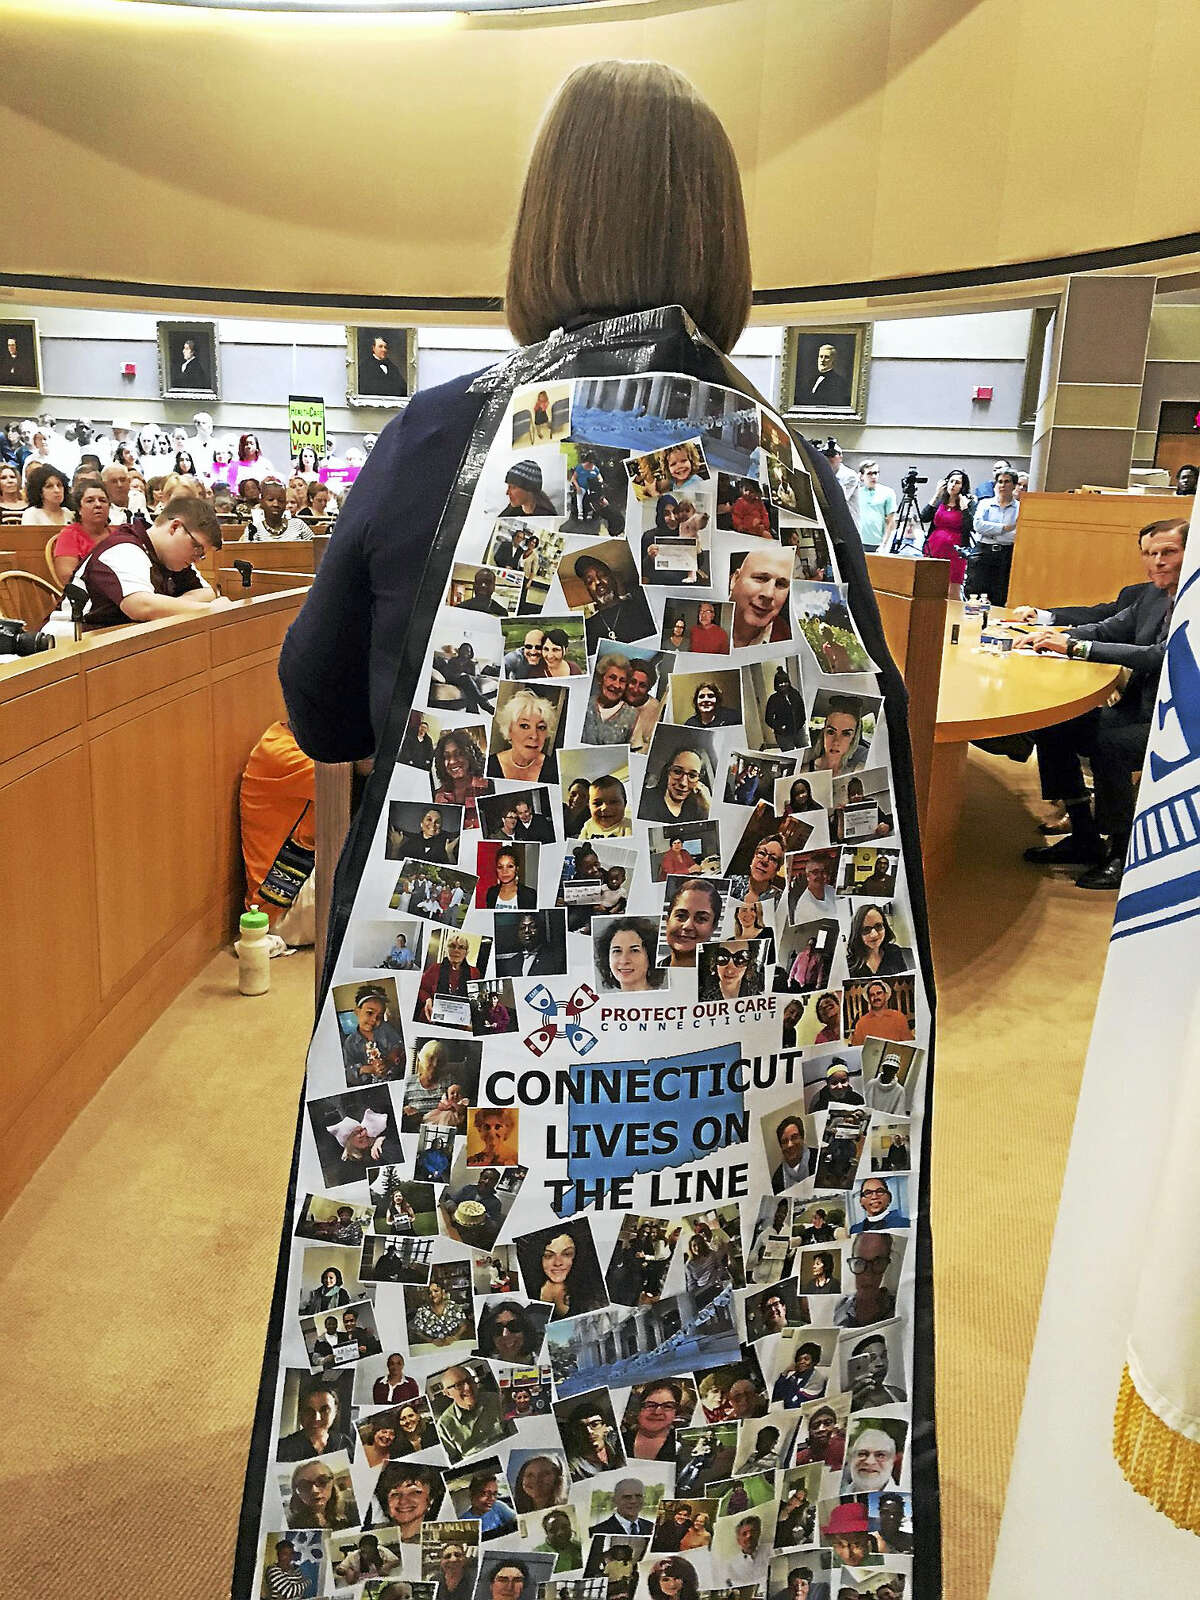 Lynn Ide of the Health Care Foundation of Connecticut wears a cape that has photos of people who say their lives are threatened if health care is cut.